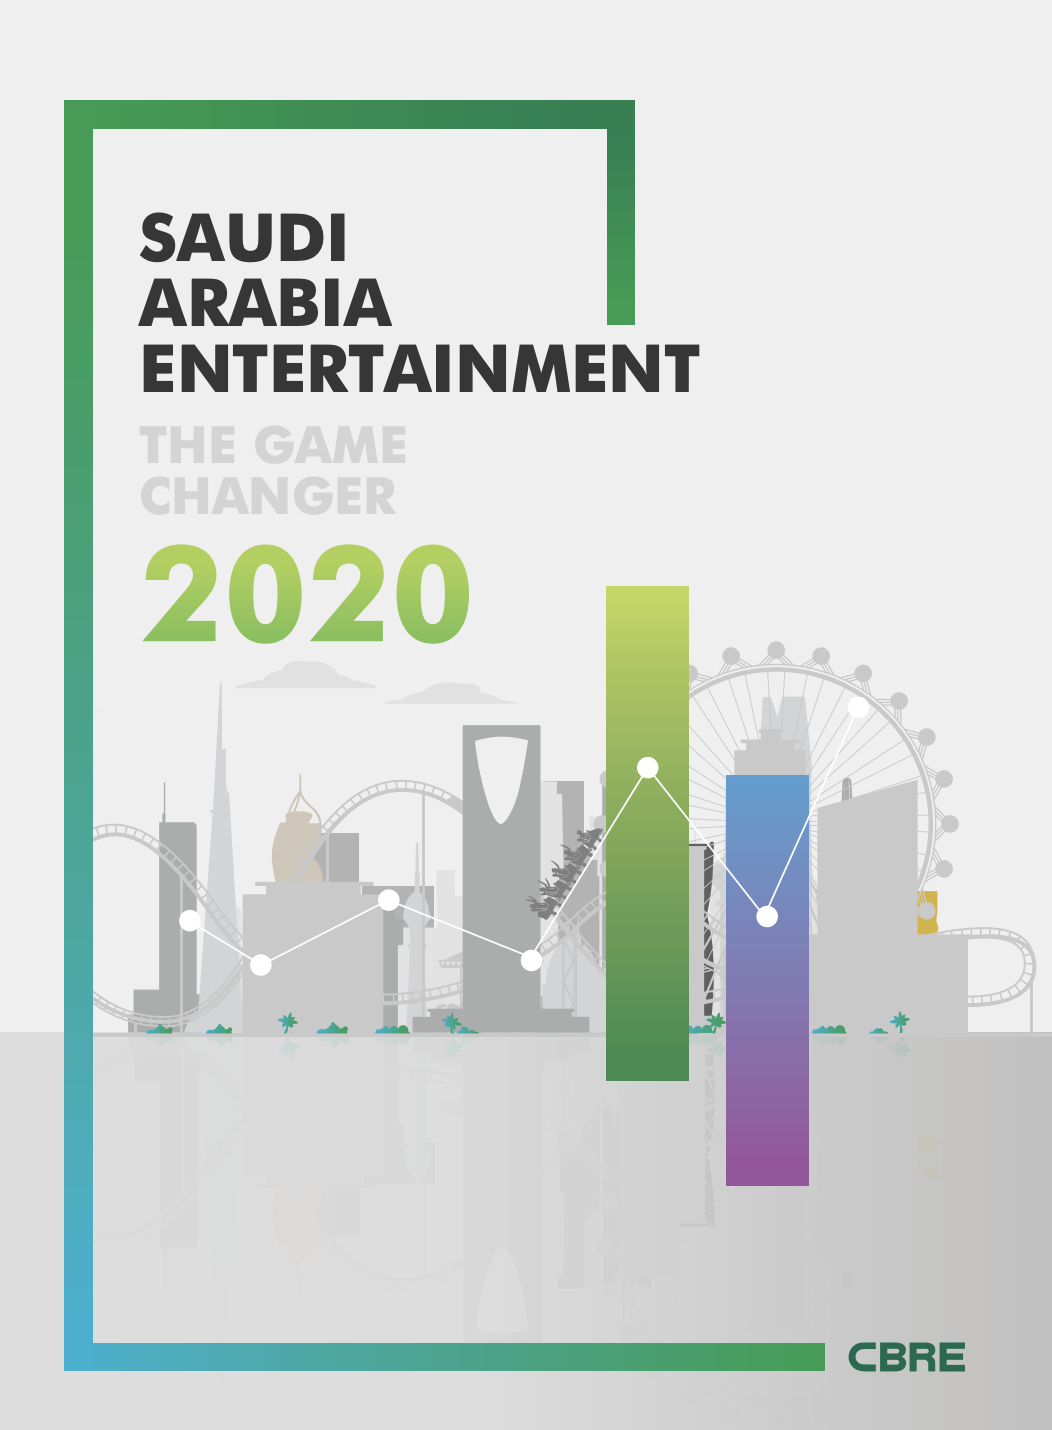 CBRE's new comprehensive look at Saudi Arabia's entertainment sector explores key milestones and developments as well as the impact on the real estate sector and development opportunities moving forward.